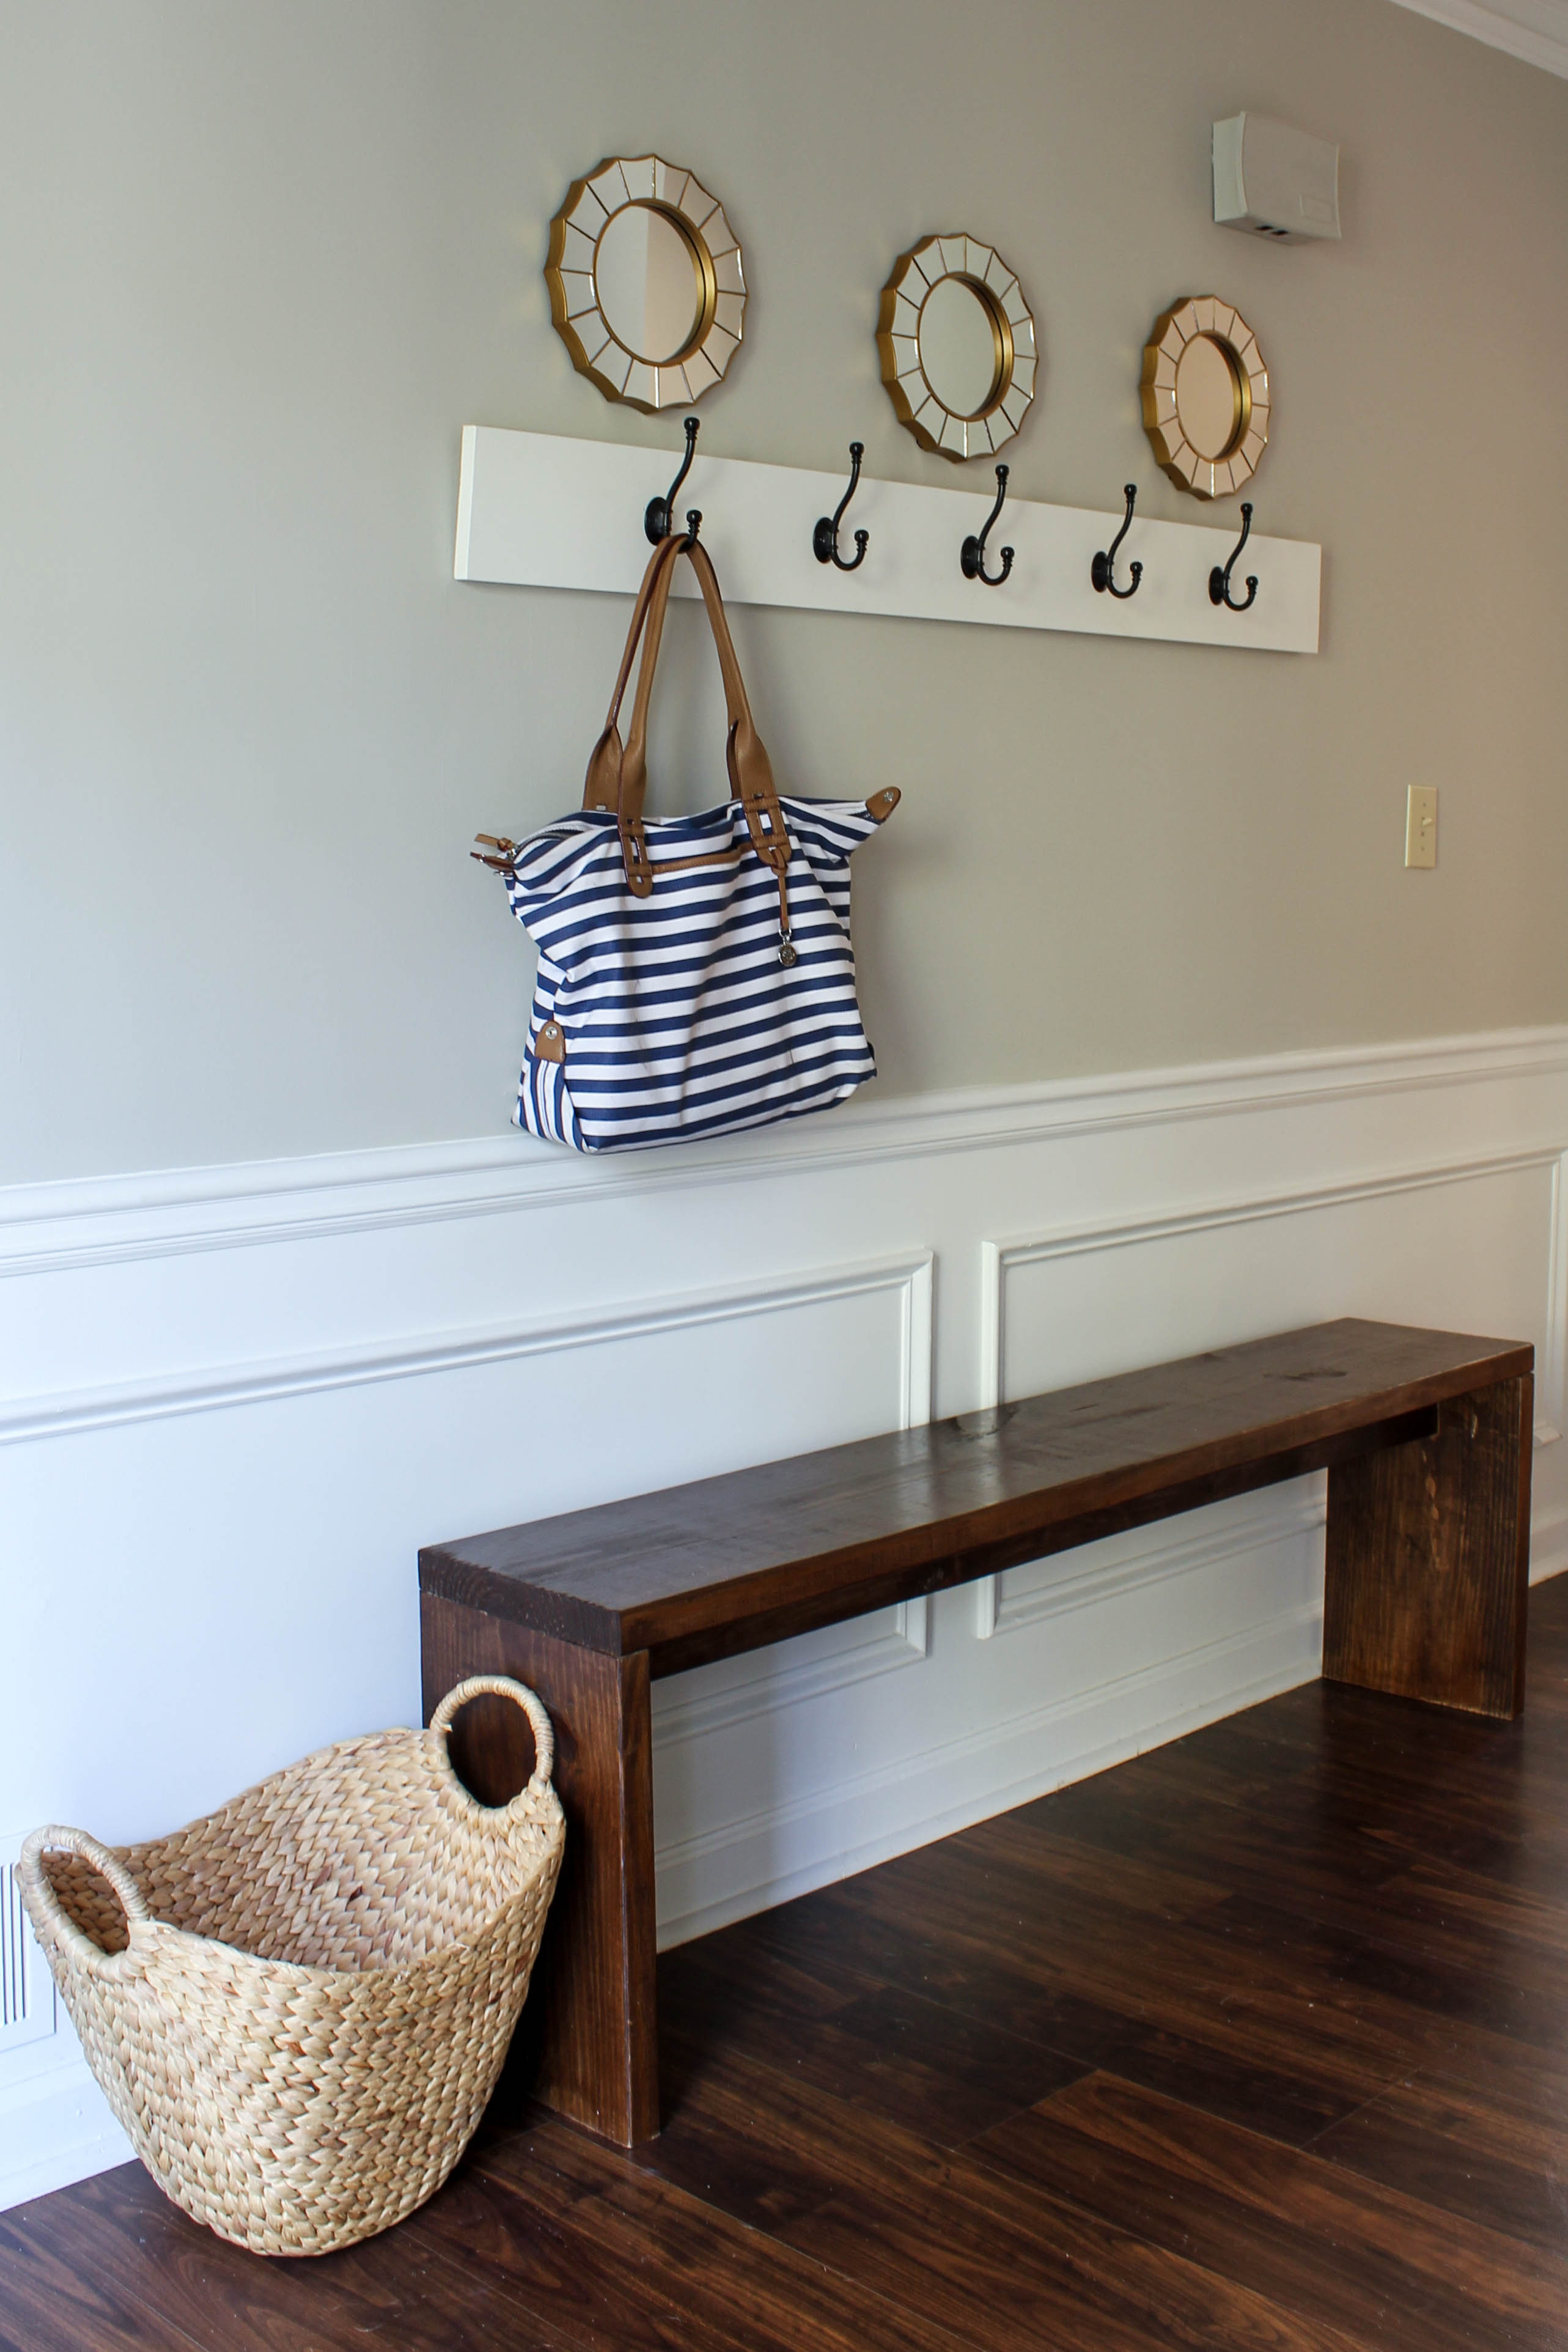 Free entryway bench build plans and tutorial.